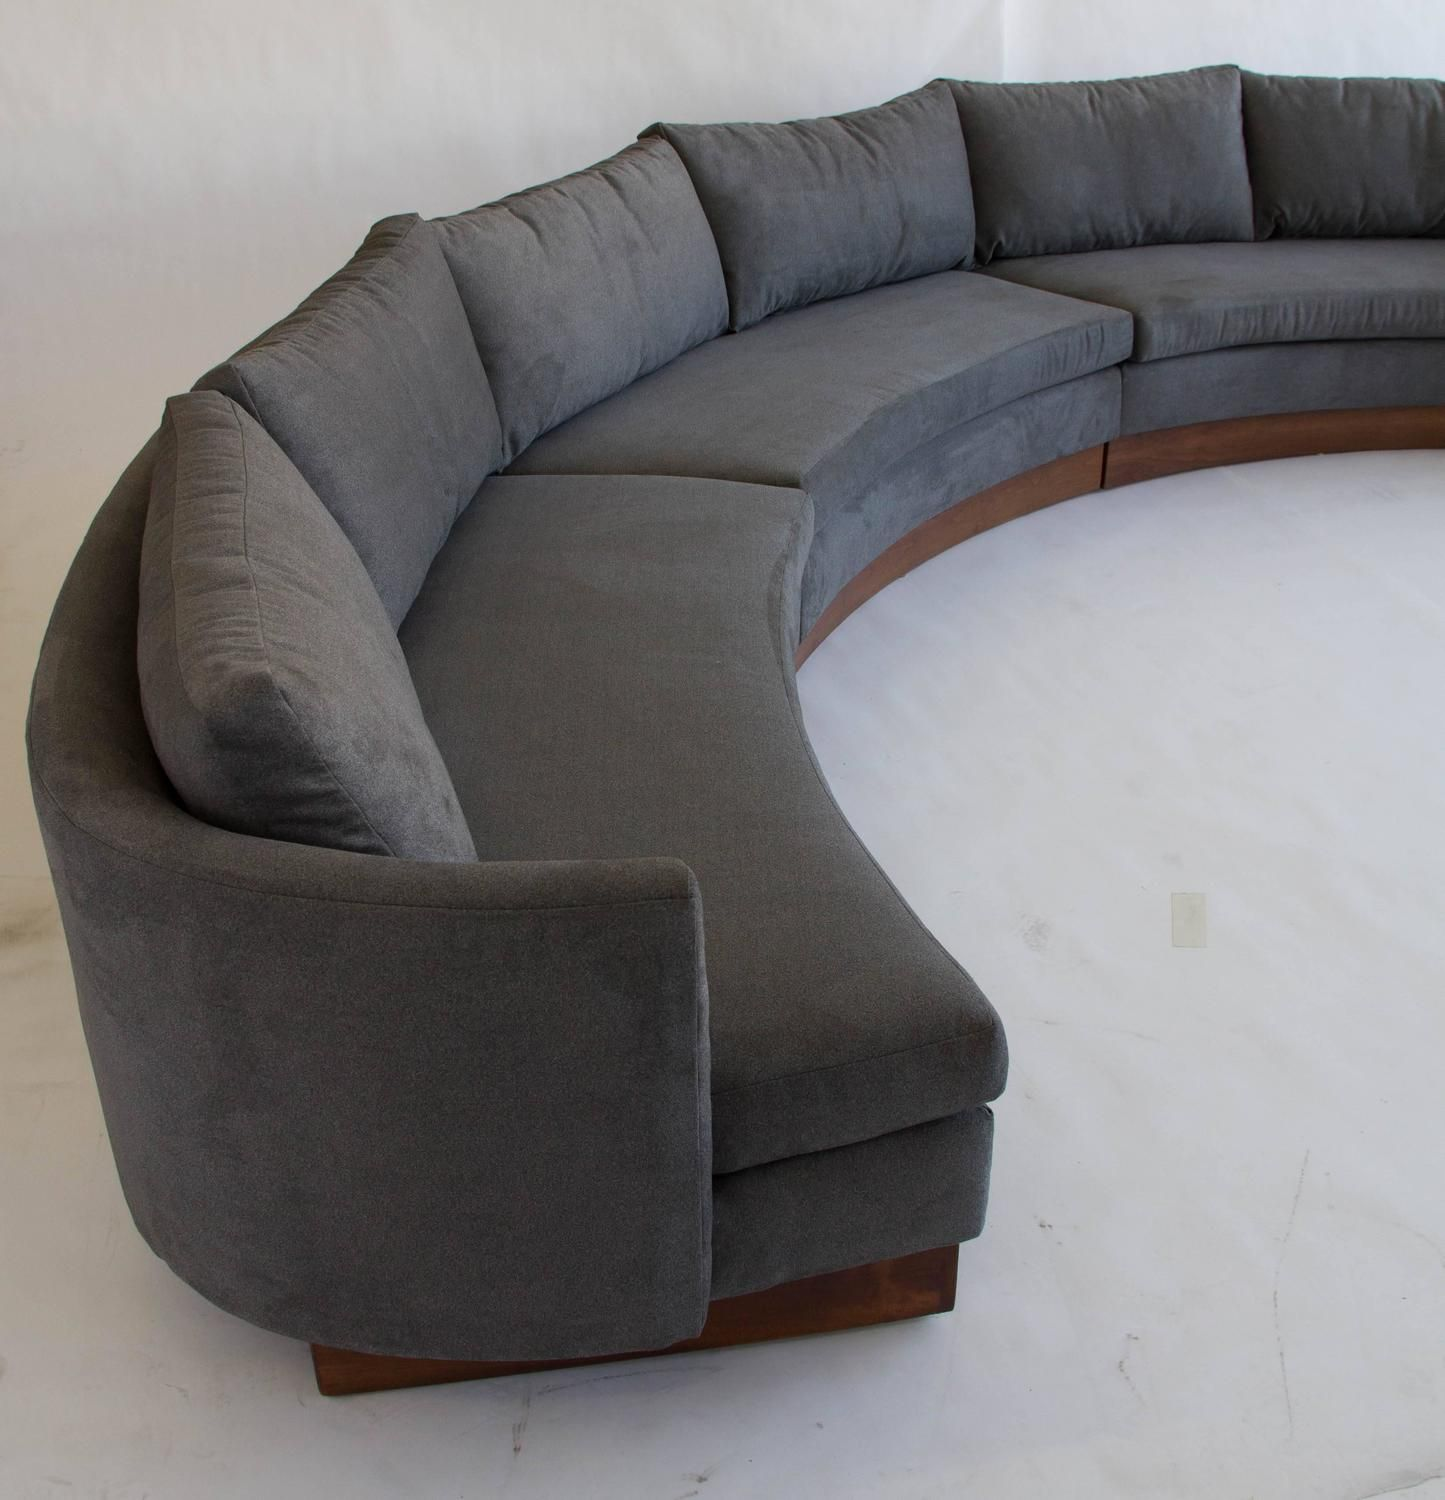 Custom Semi Circular Sectional By Carson S Of North Carolina From A Unique Collection Antique And Modern Sofas At